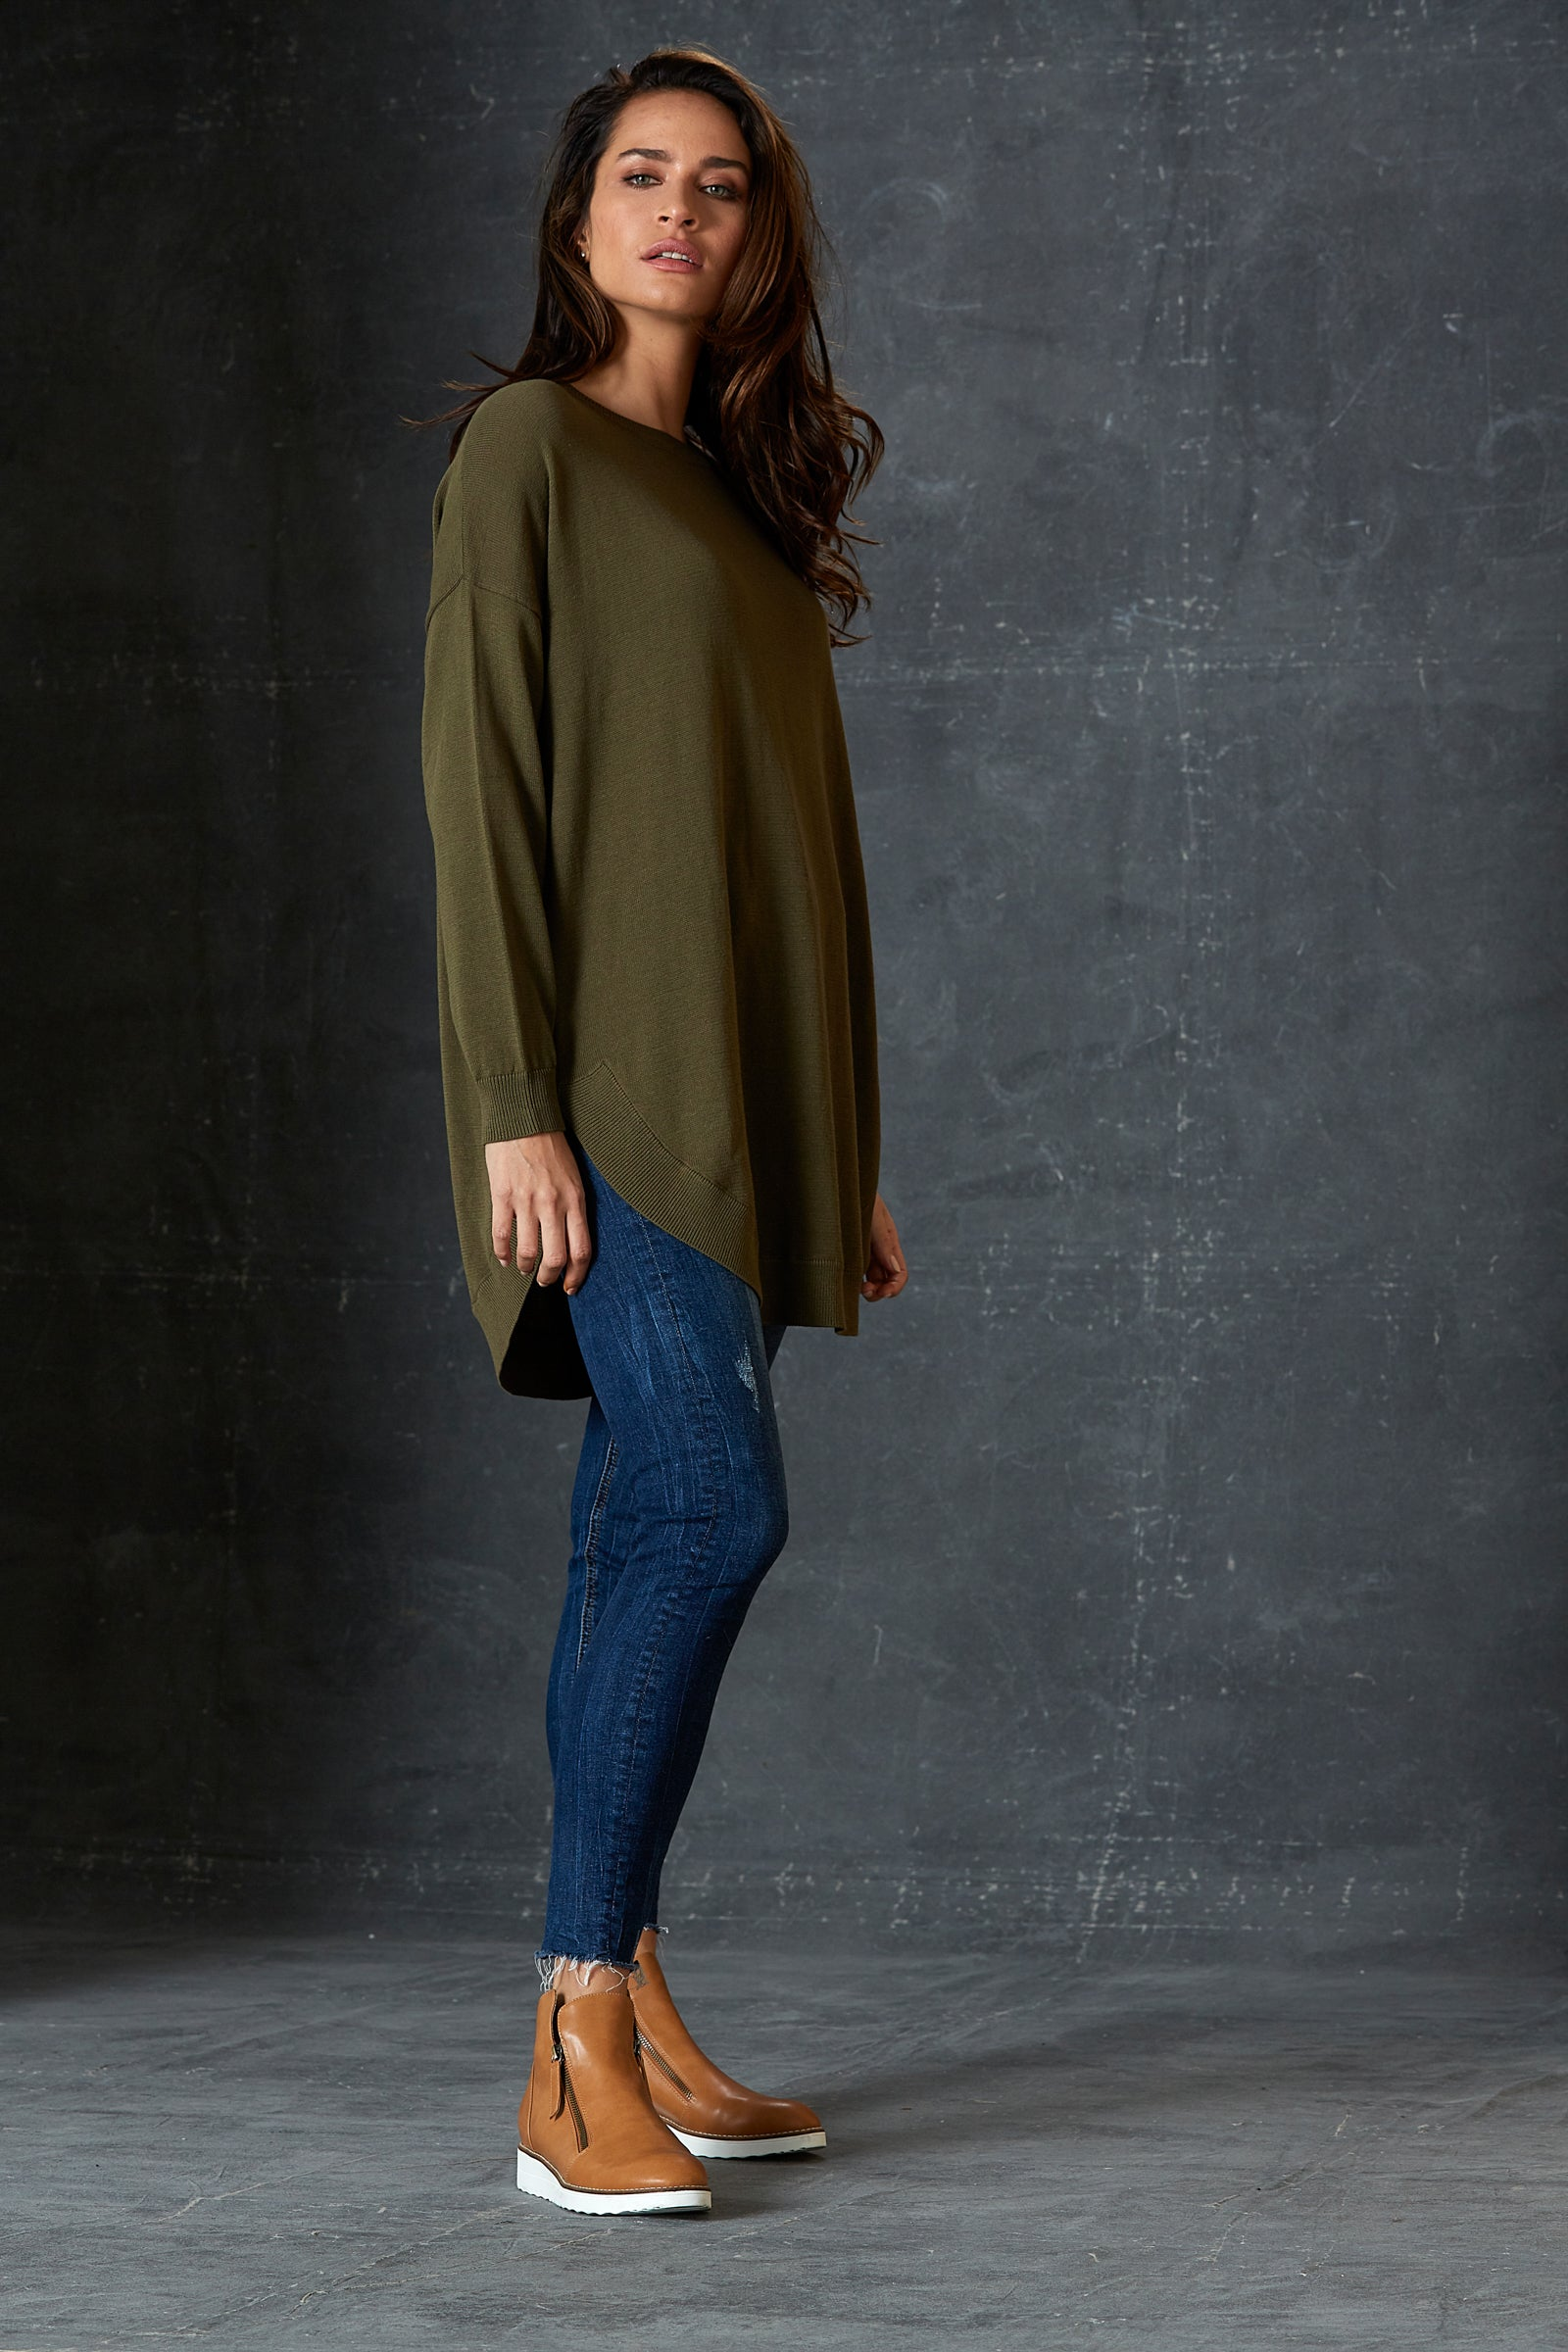 TGIF Knit - Olive - eb&ive Clothing - Knit Jumper One Size